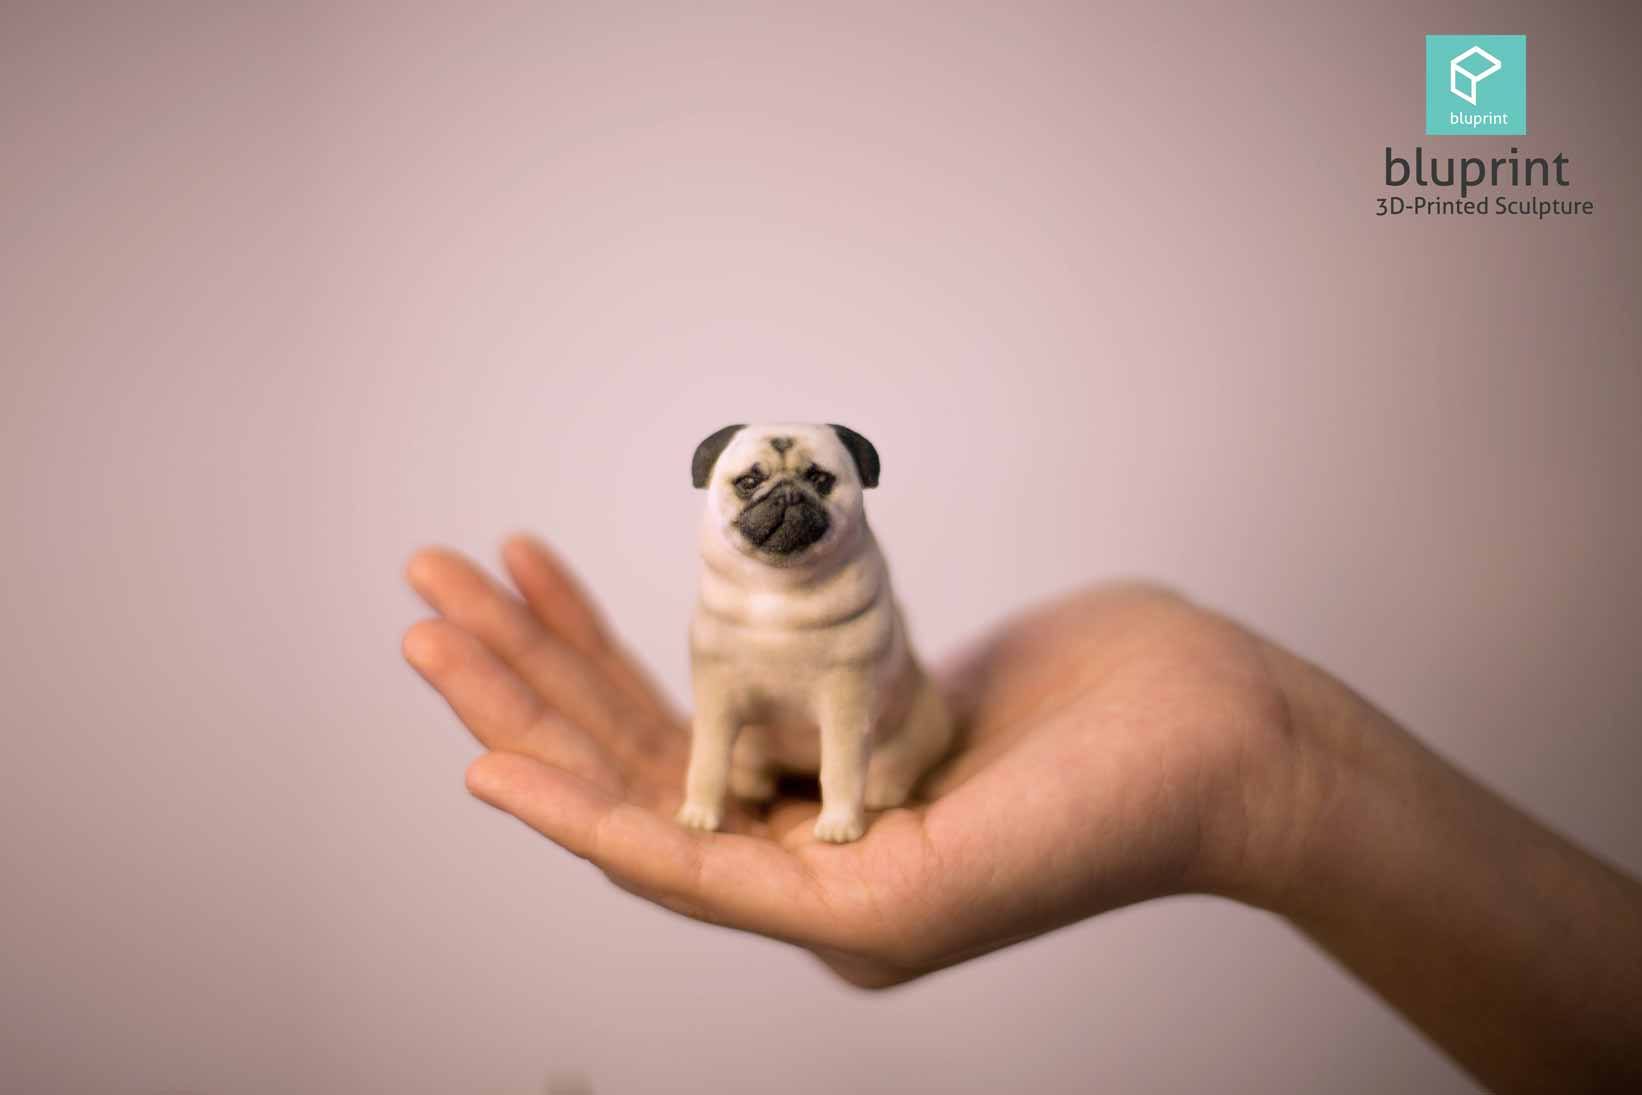 Bluprint 3D Figure Pet Pug on hand